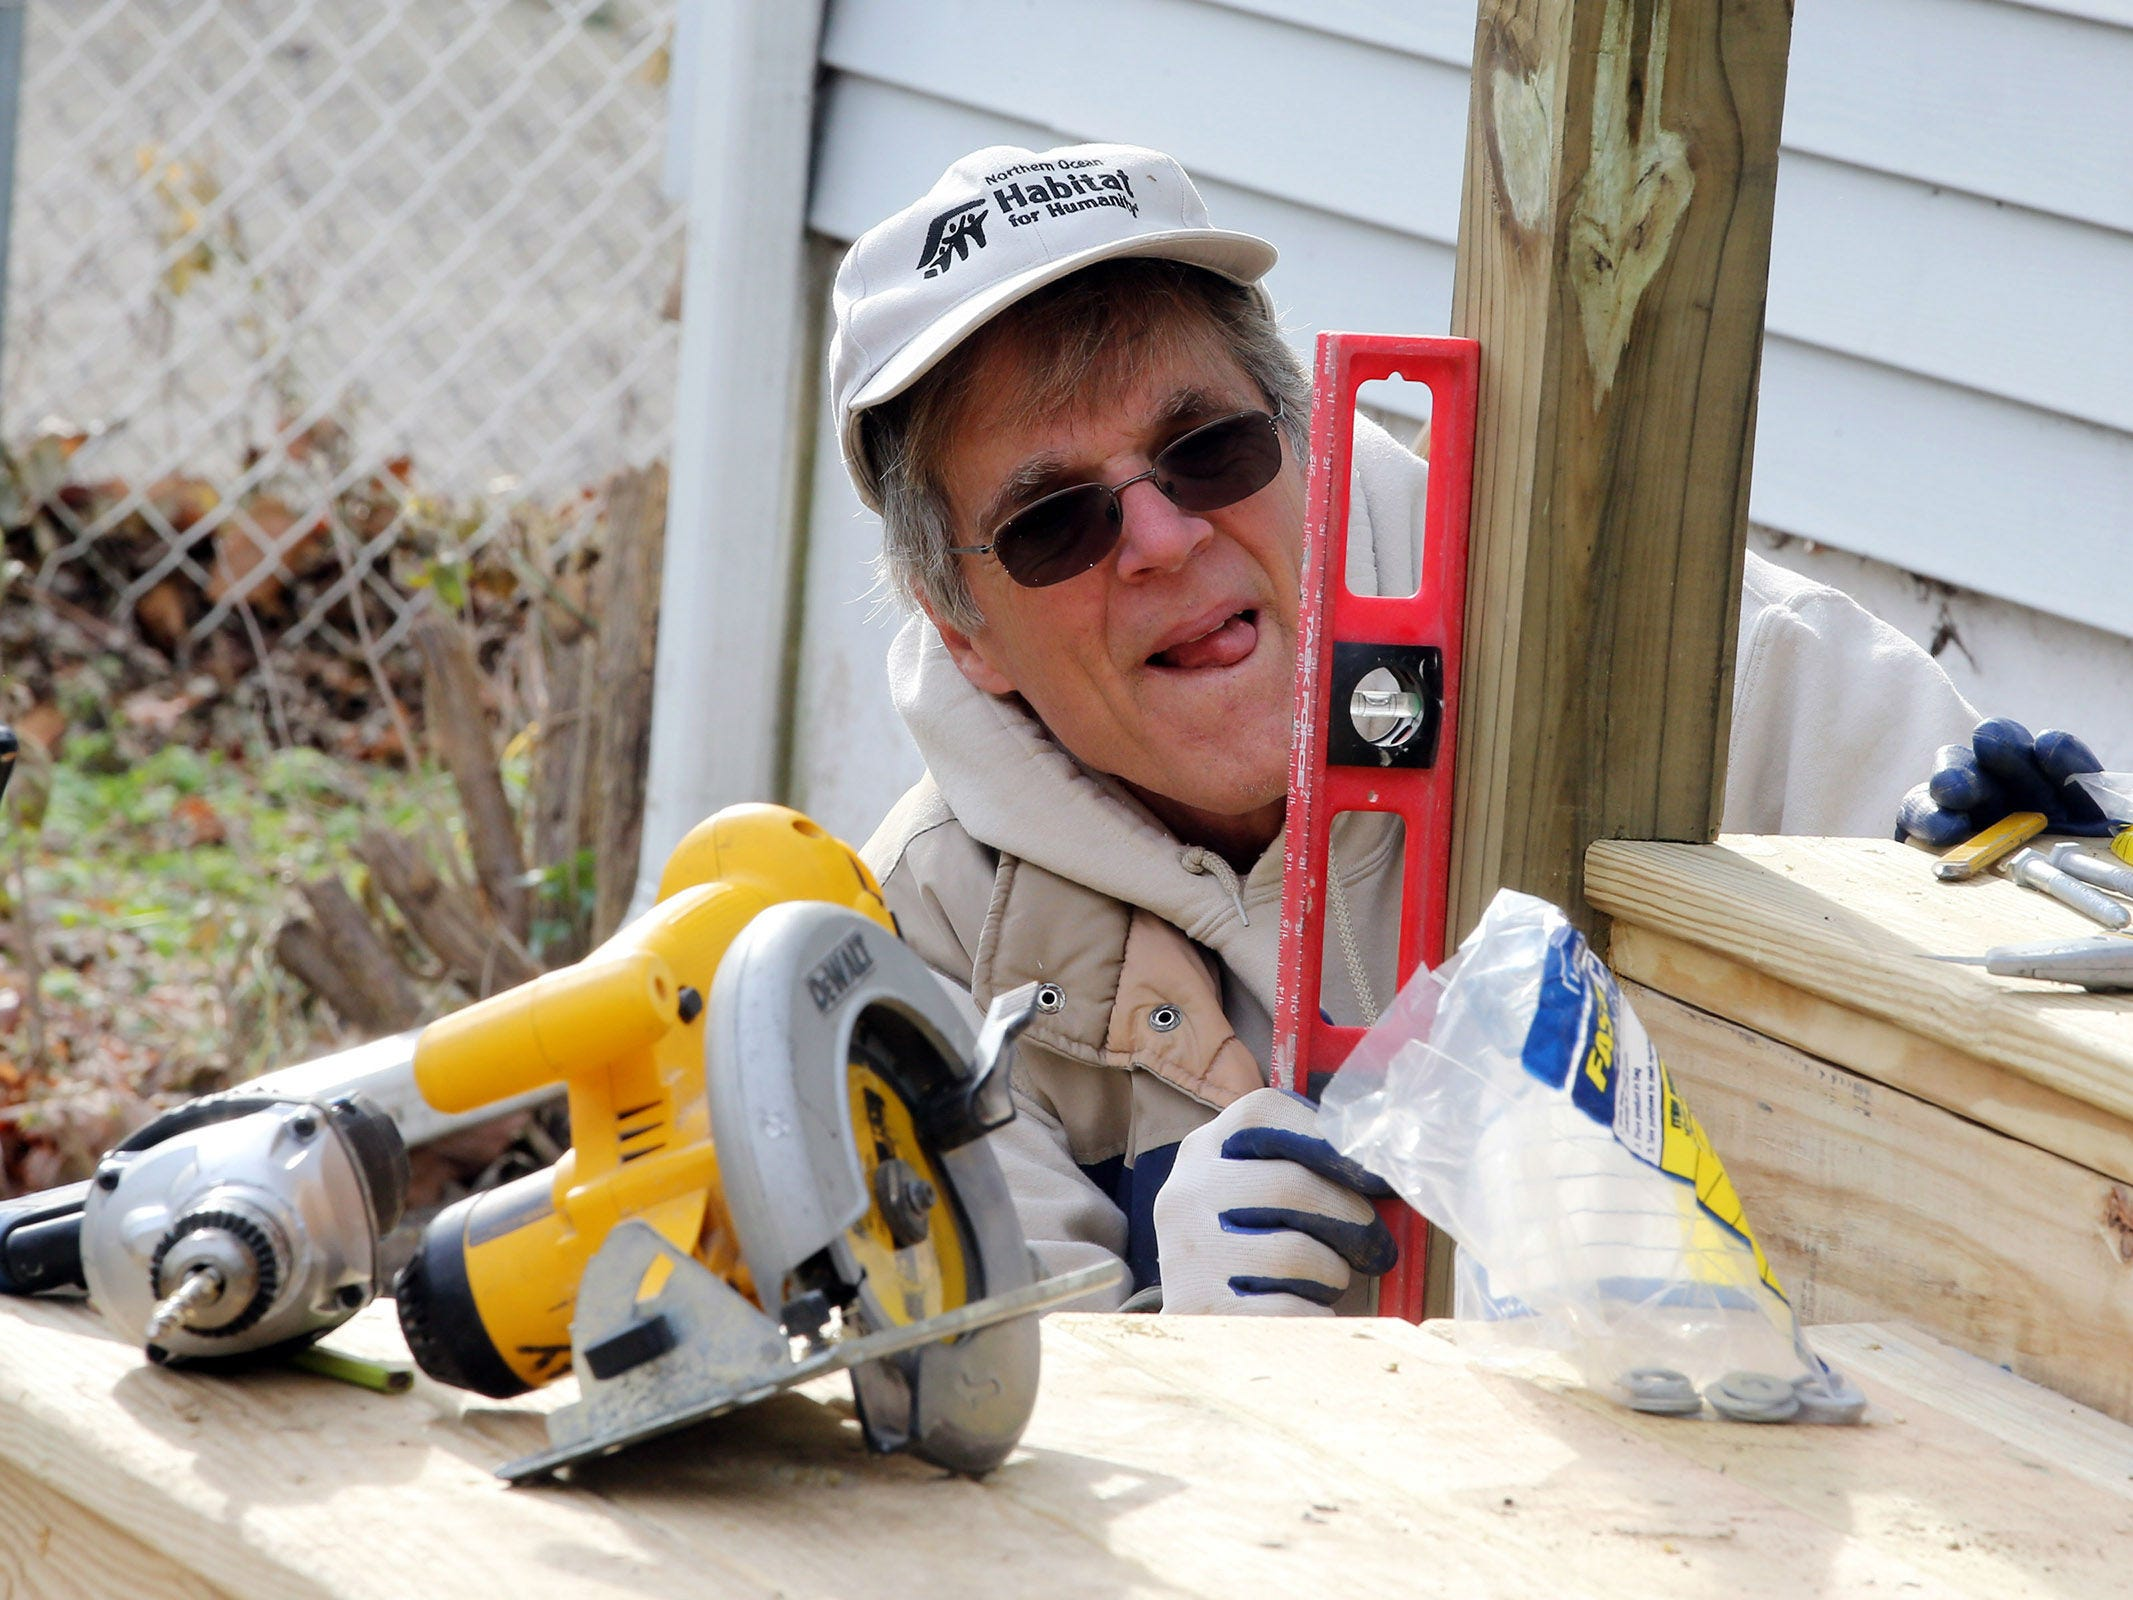 Jeff Dickert of New Egypt volunteers with Northern Ocean Habitat for Humanity as they work on the home of Korean War veteran Walter Brandon, 85, and wife Patricia, which is Northern Ocean Habitat for Humanity's 200th home repair, in Brick, NJ Thursday, December 6, 2018.